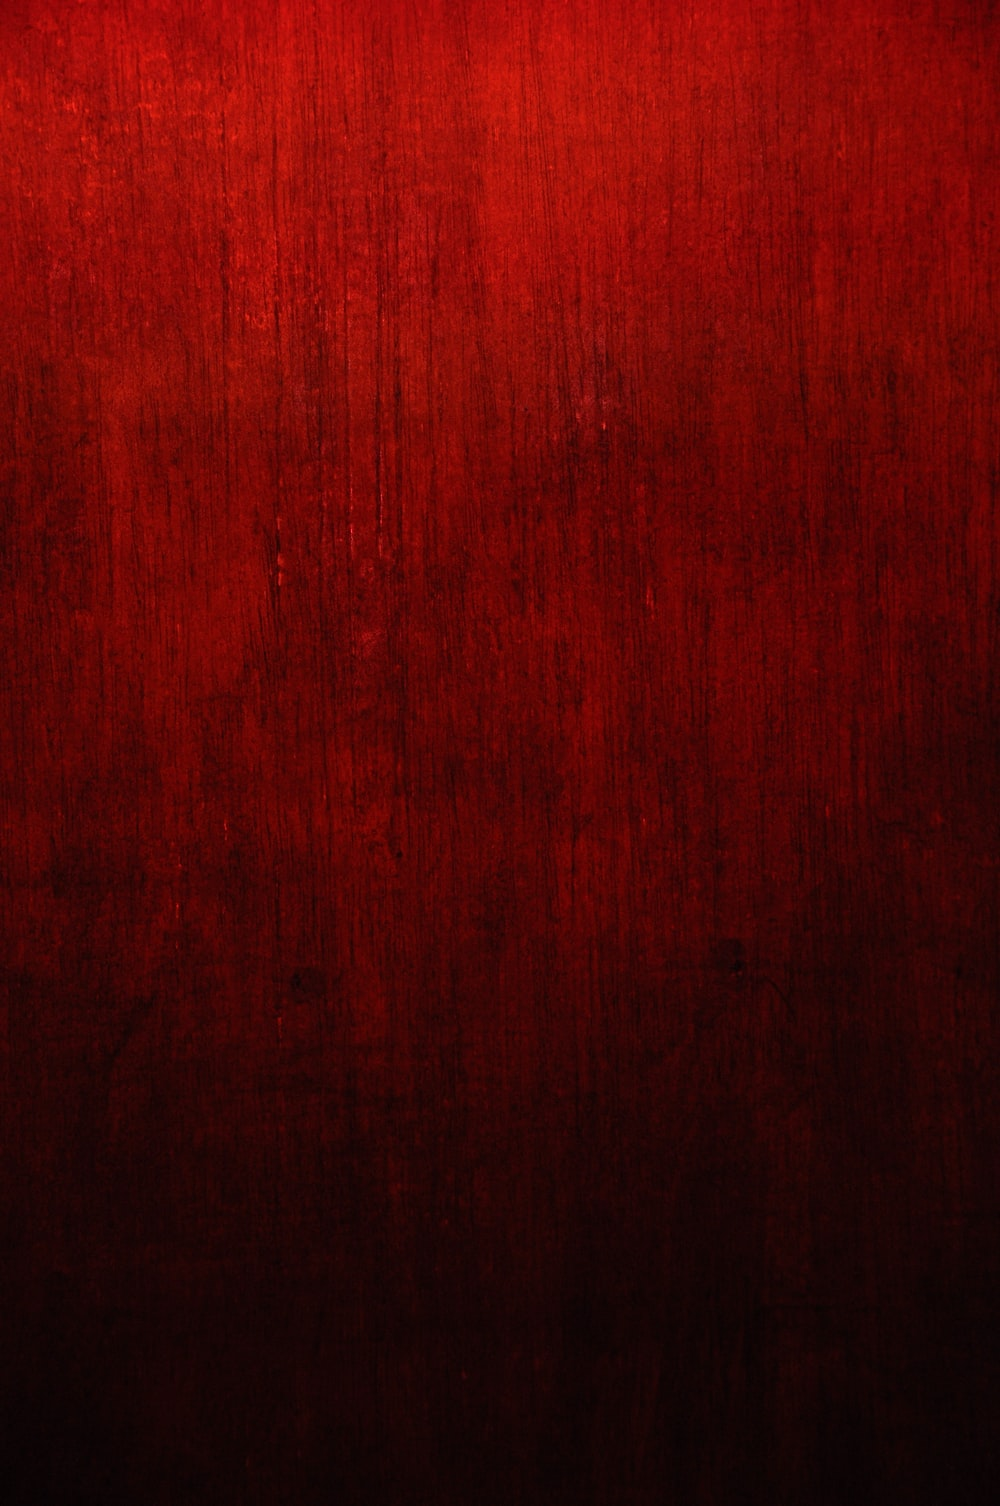 maroon colour pictures download free images on unsplash maroon colour pictures download free